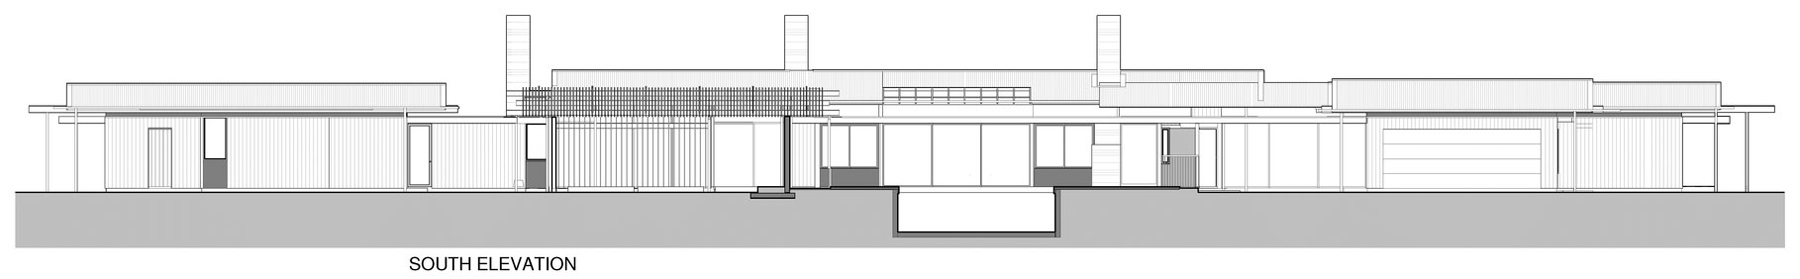 South Elevation, Wairau Valley House in Rapaura, New Zealand by Parsonson Architects